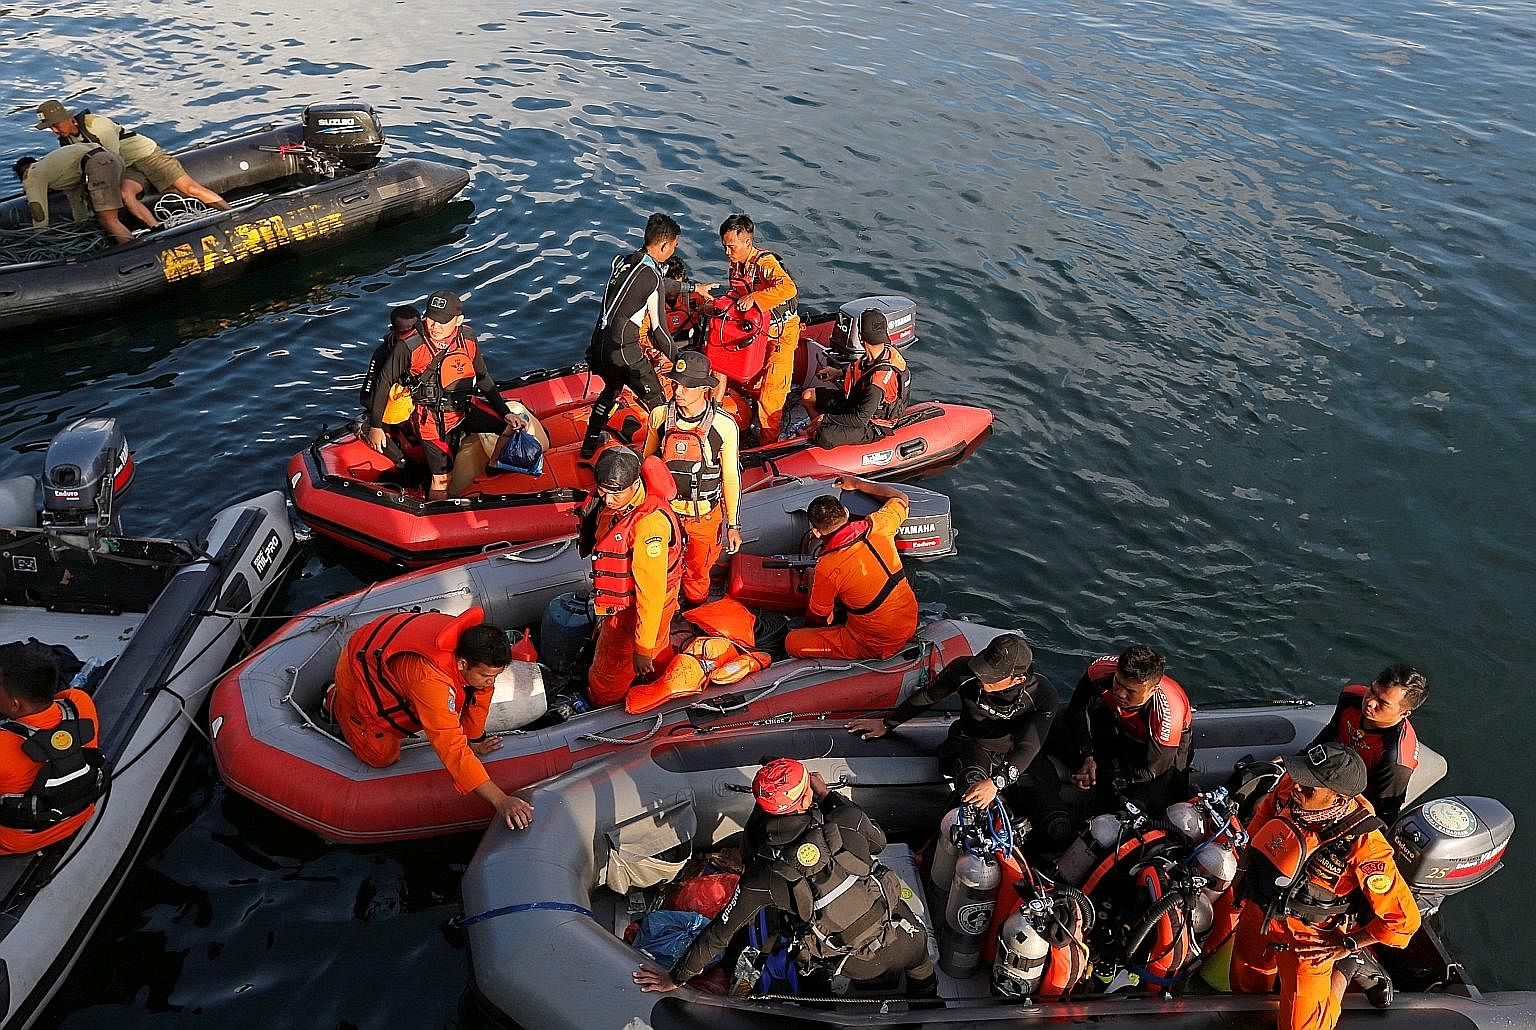 Rescuers looking for missing people after Monday's ferry accident on Lake Toba in Indonesia.